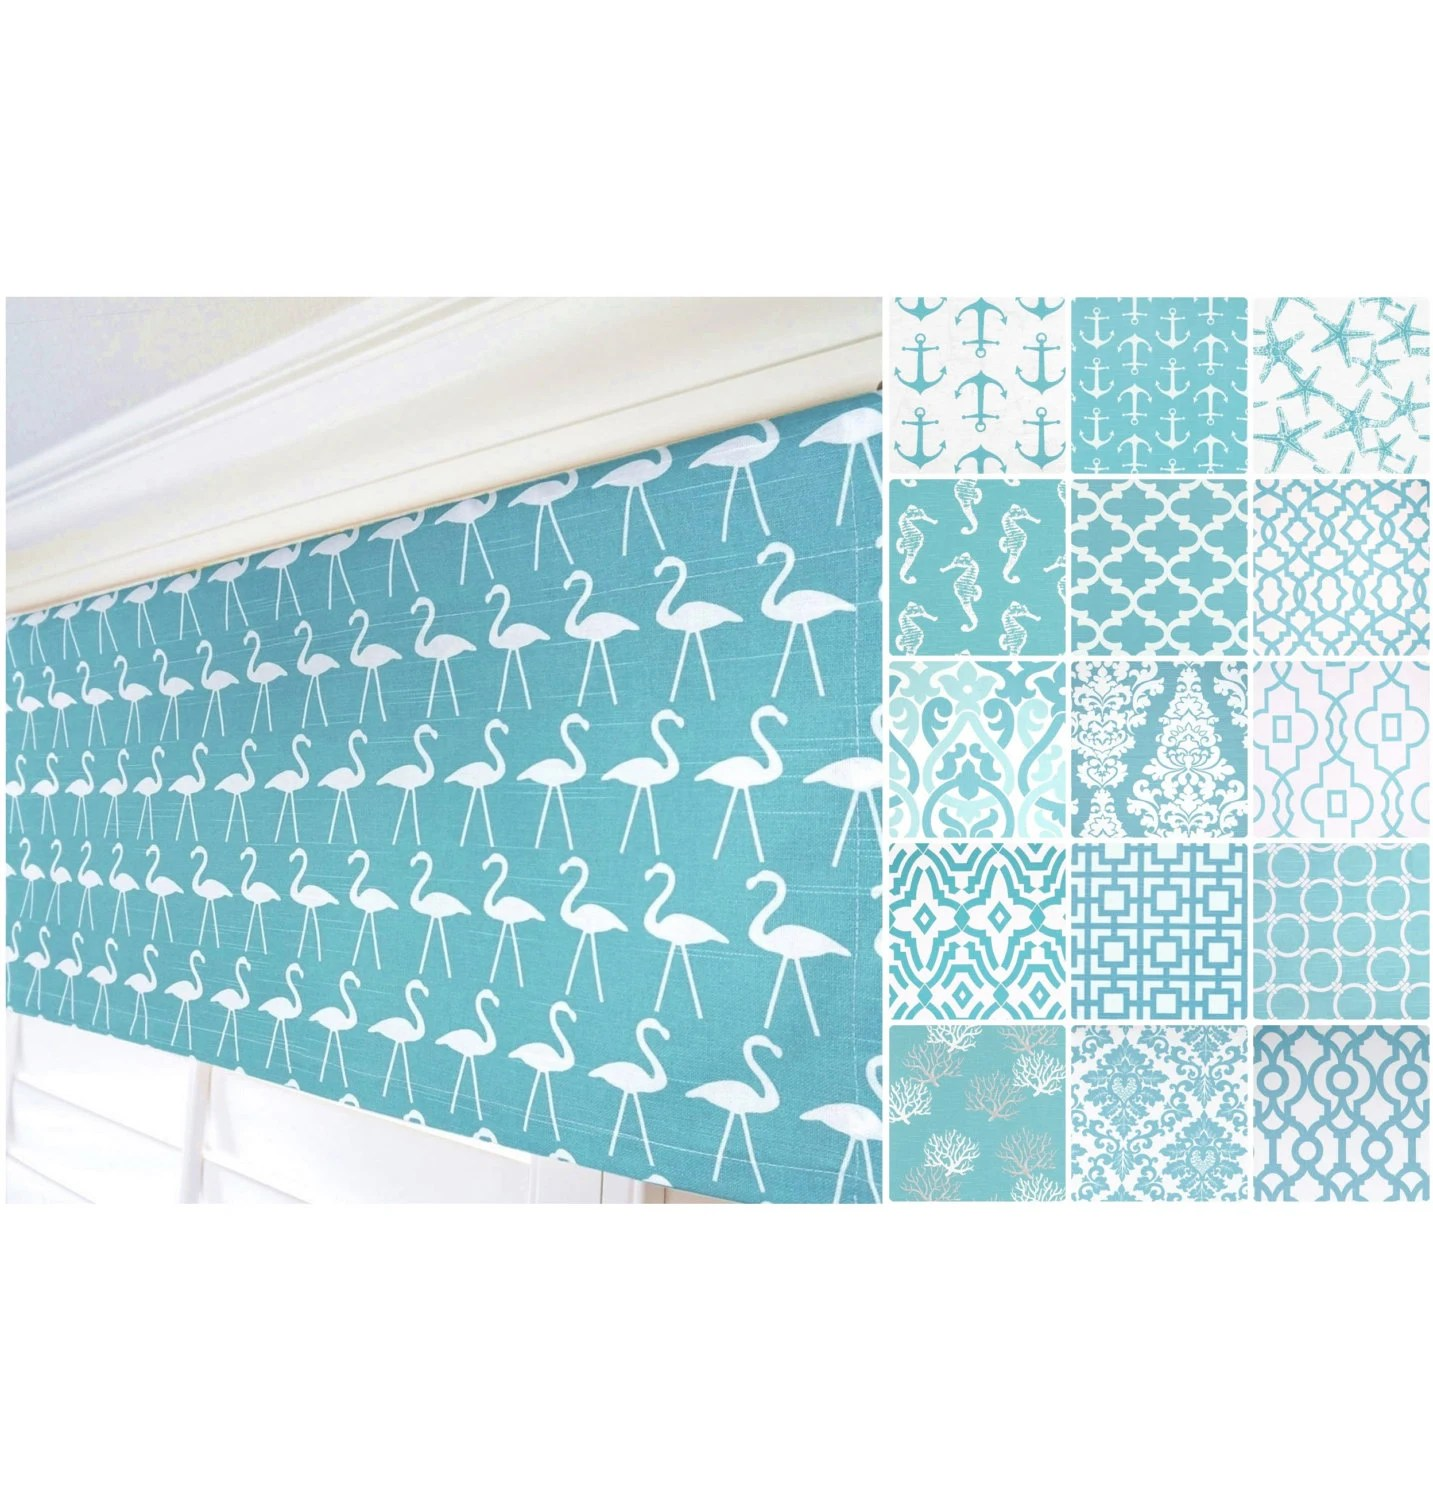 Aqua Valance Curtain Grey Curtain Nautical Anchor Curtain